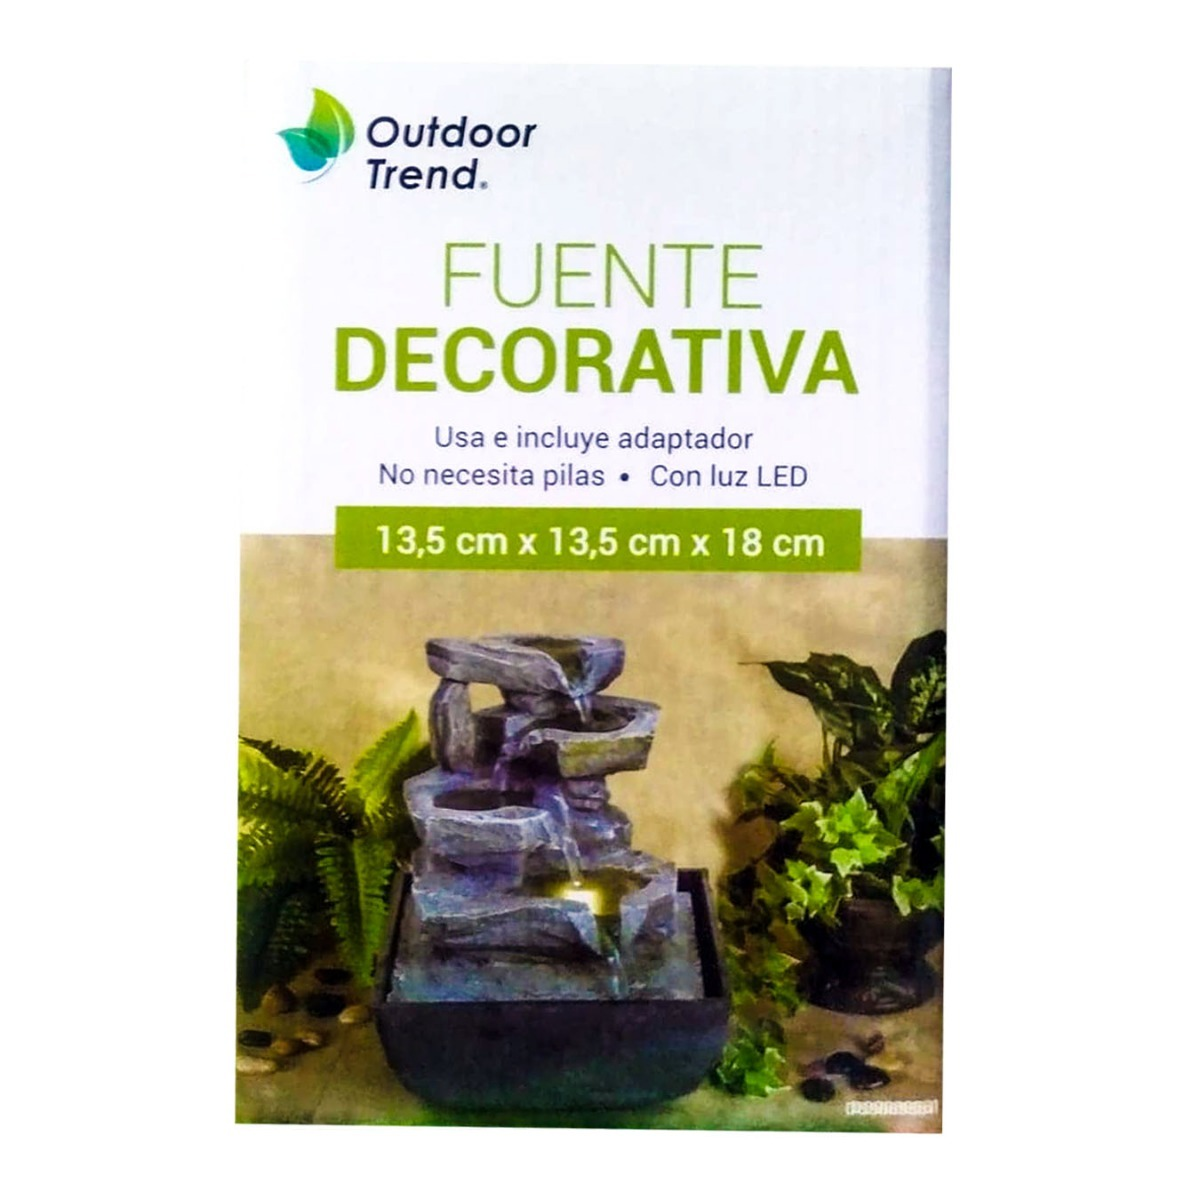 Fuente Decorativa Fuente Decorativa Outdoor Trend Con Luz Led 18cm